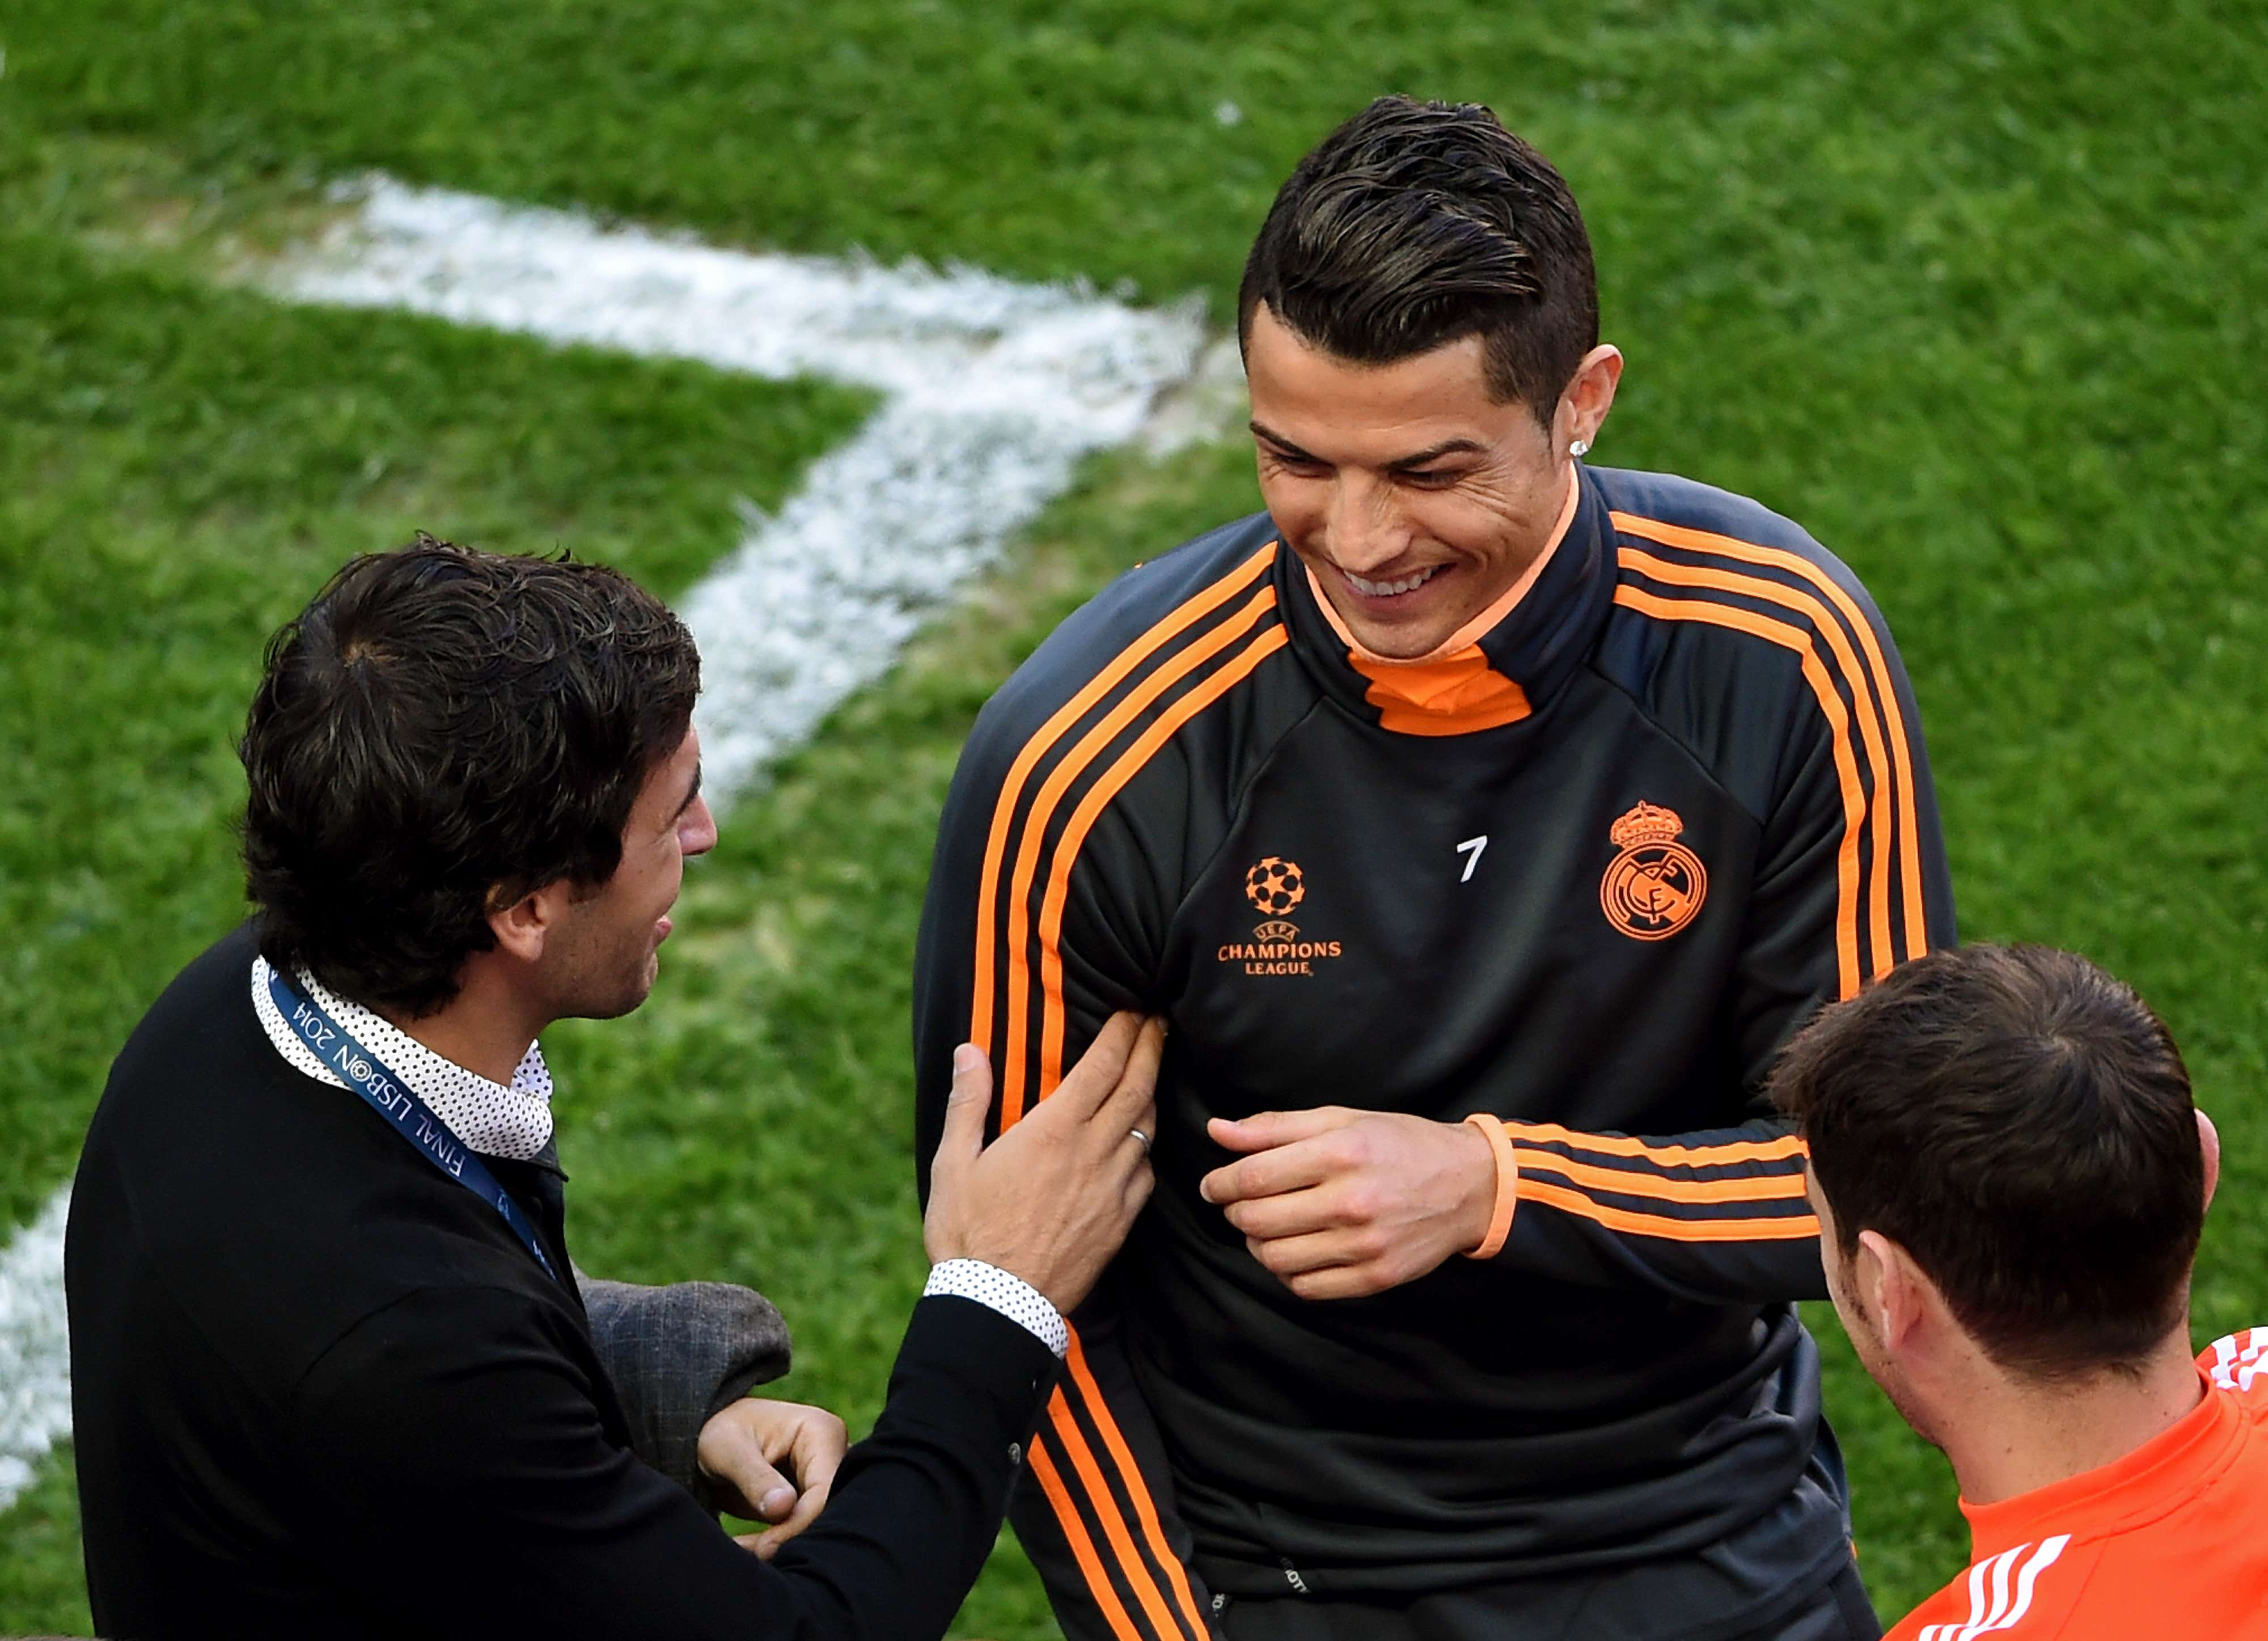 Raúl y Cristiano Ronaldo. Foto: Getty Images